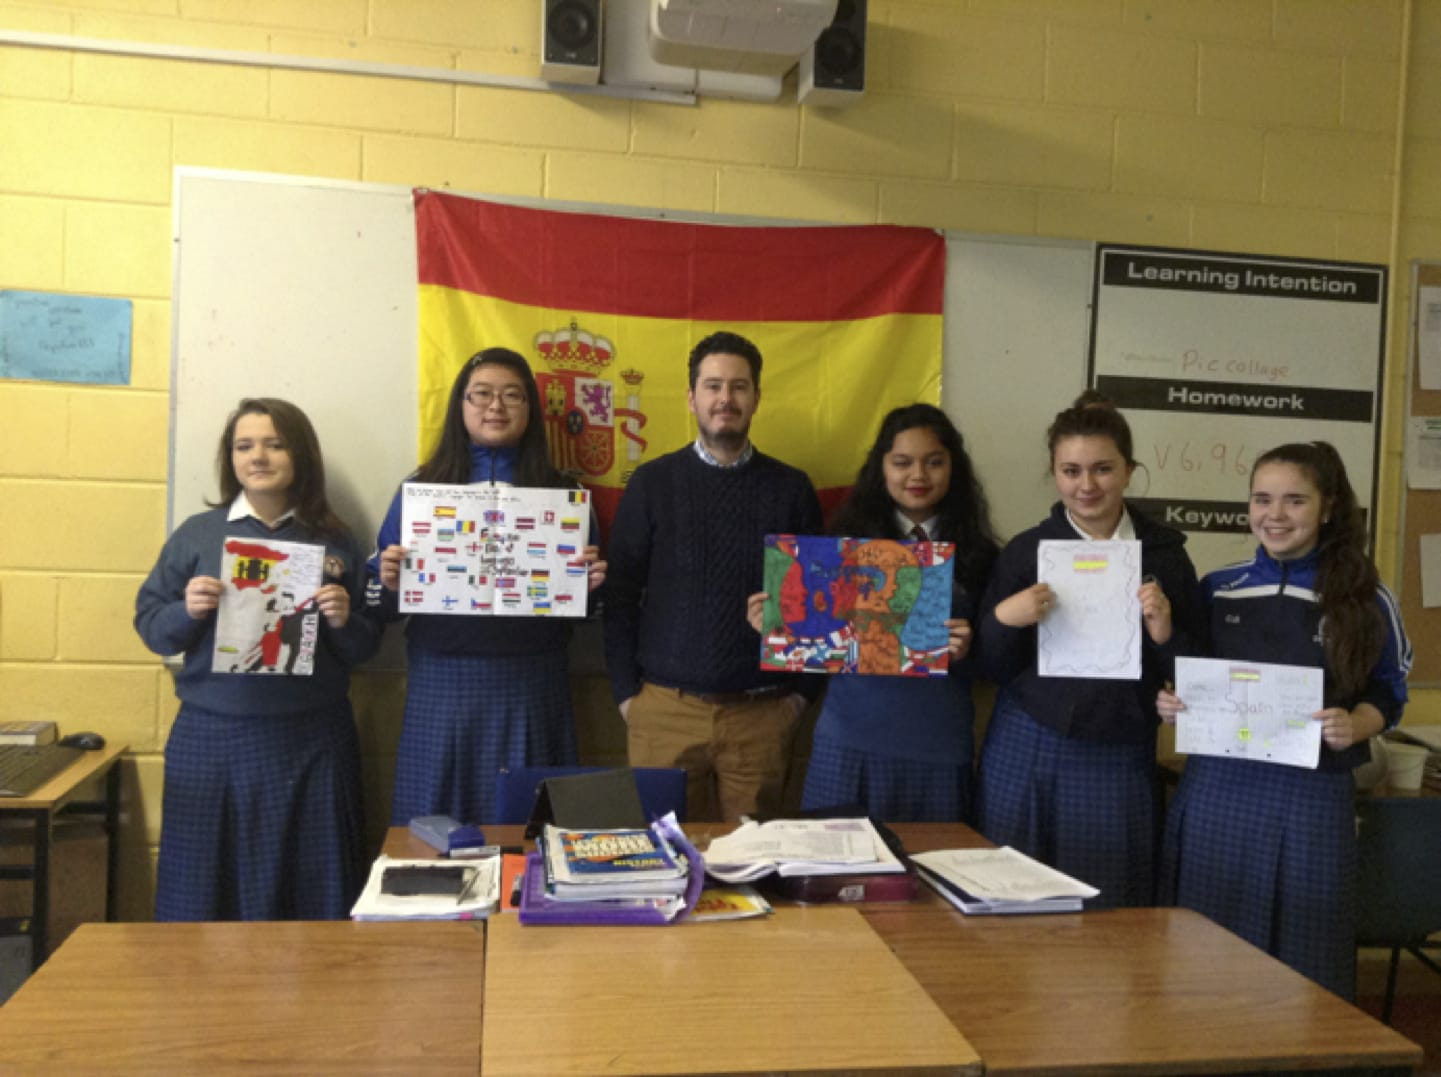 2016: Mr Russell (Spanish Teacher in Desmond College Post Primary School) with his Second Year Spanish Students after completing their posters